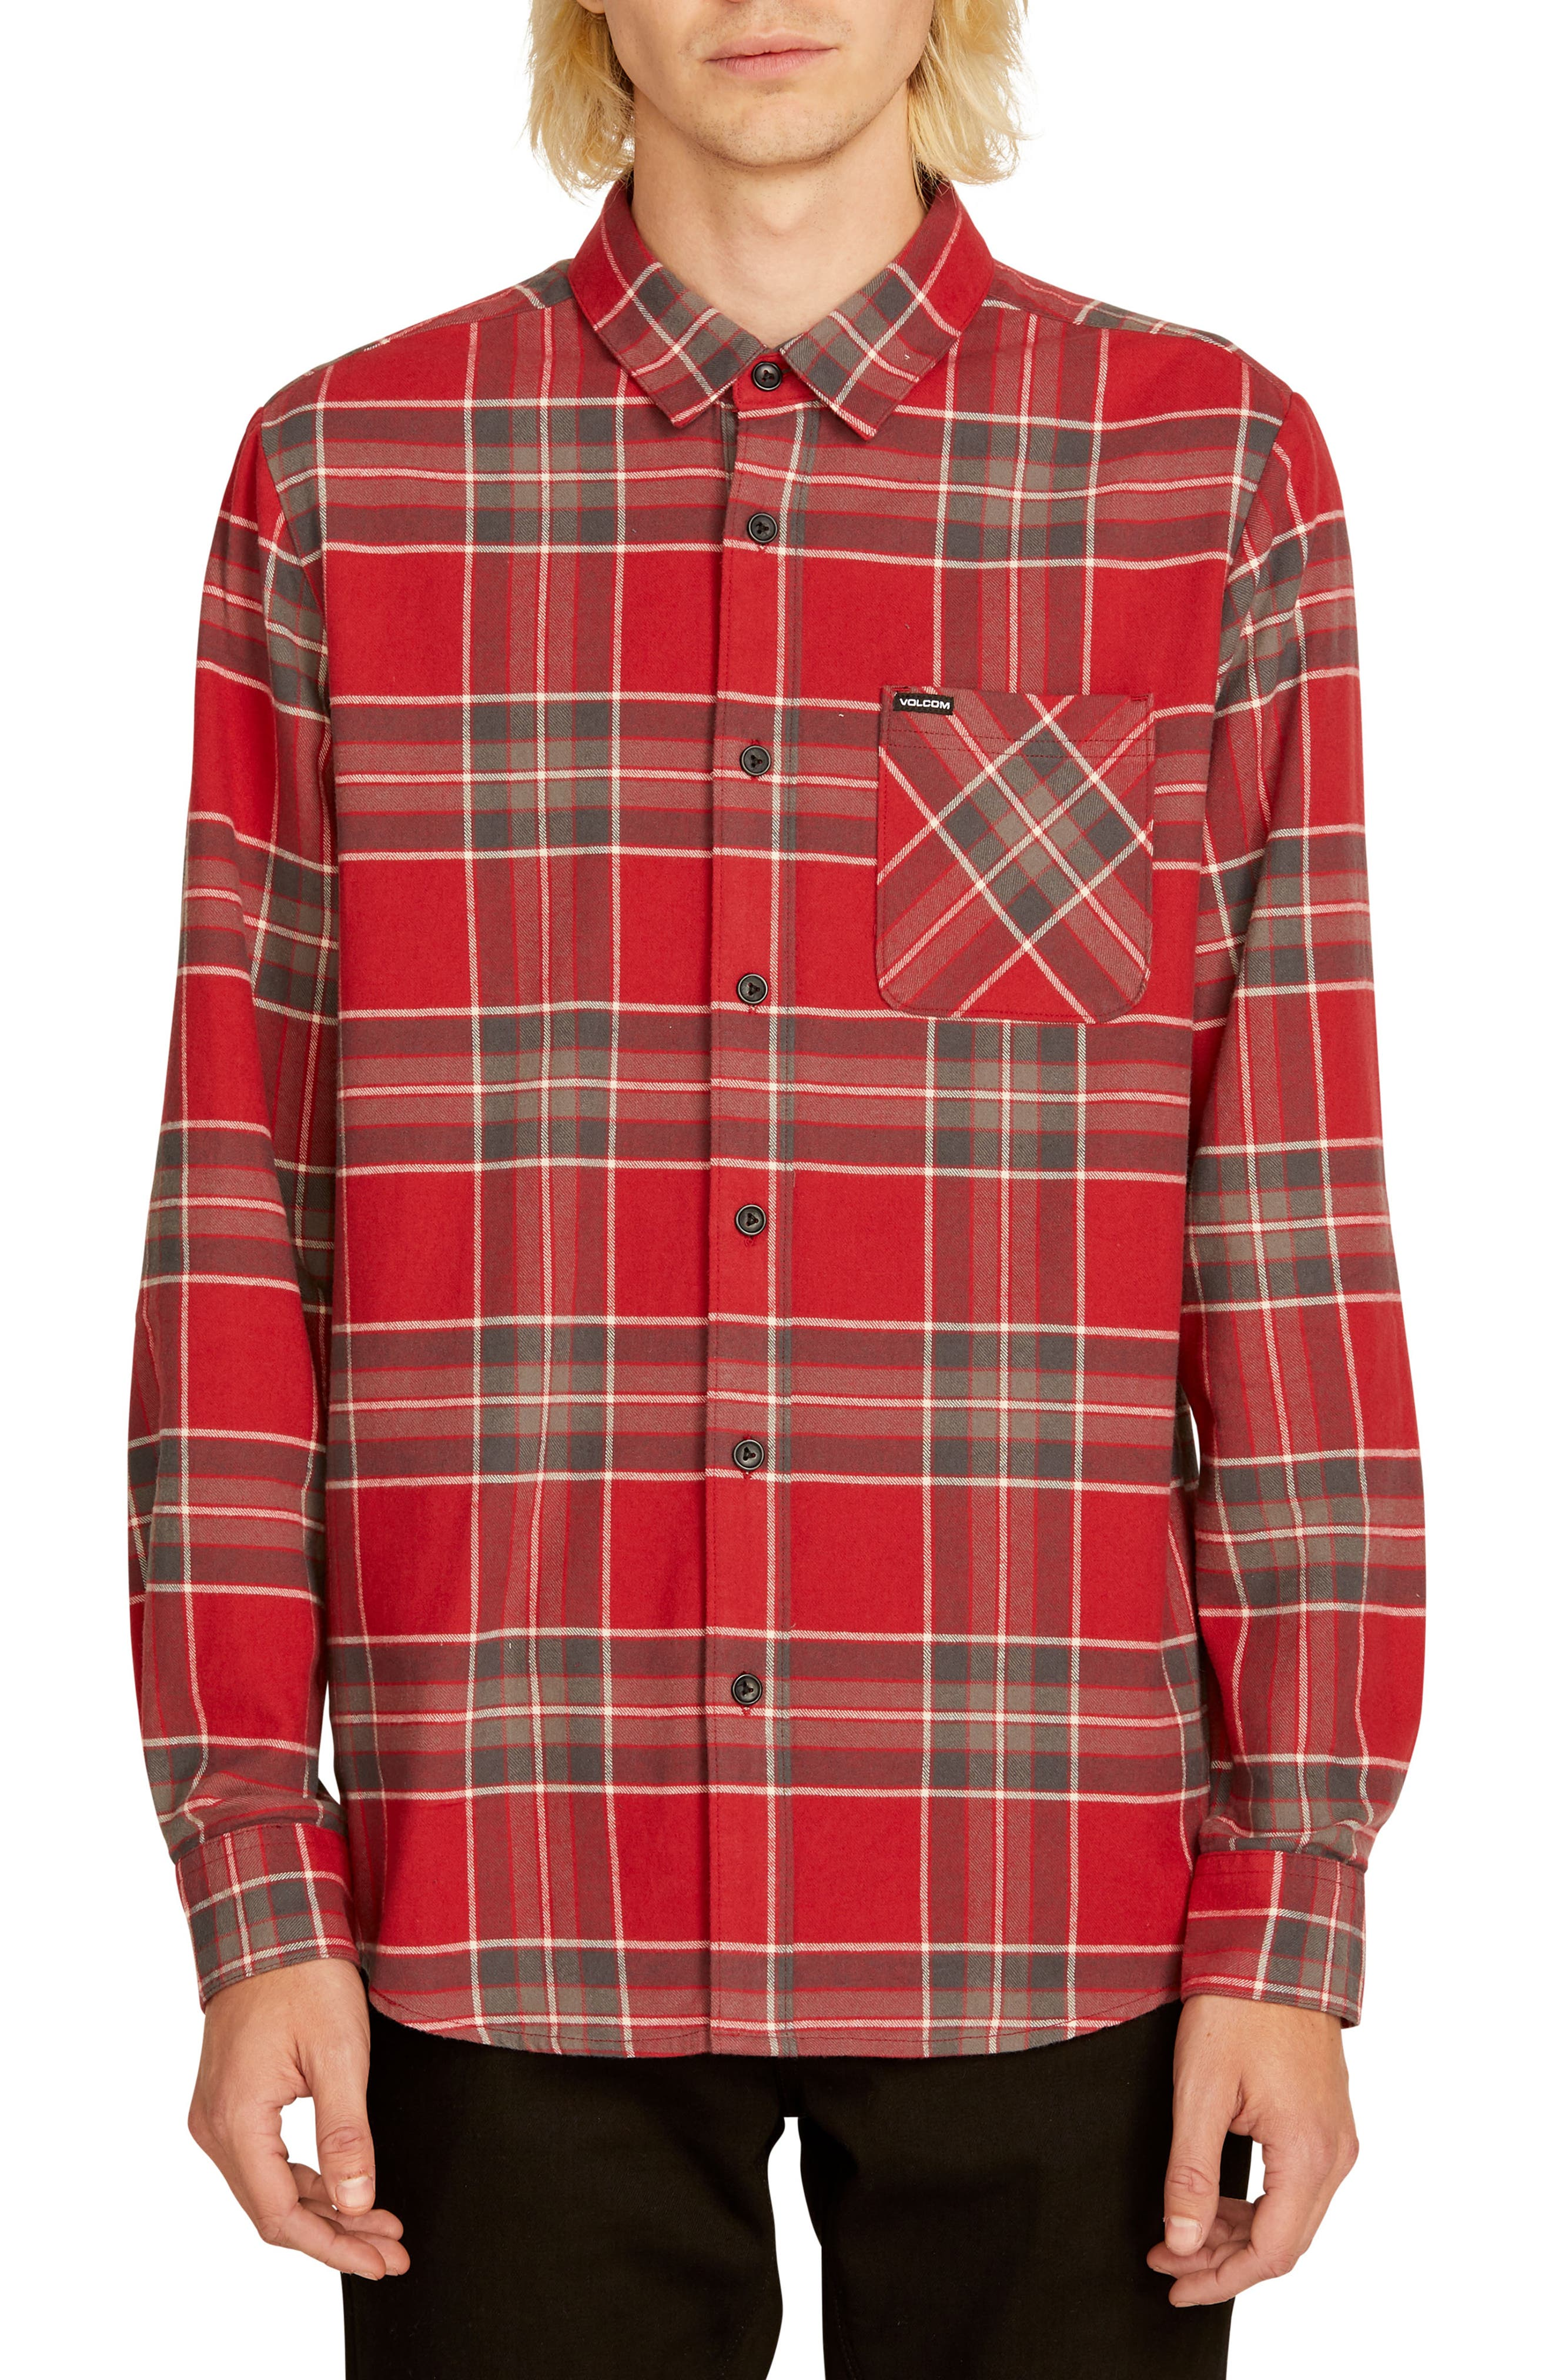 Volcom Caden Plaid Flannel Shirt, Burgundy